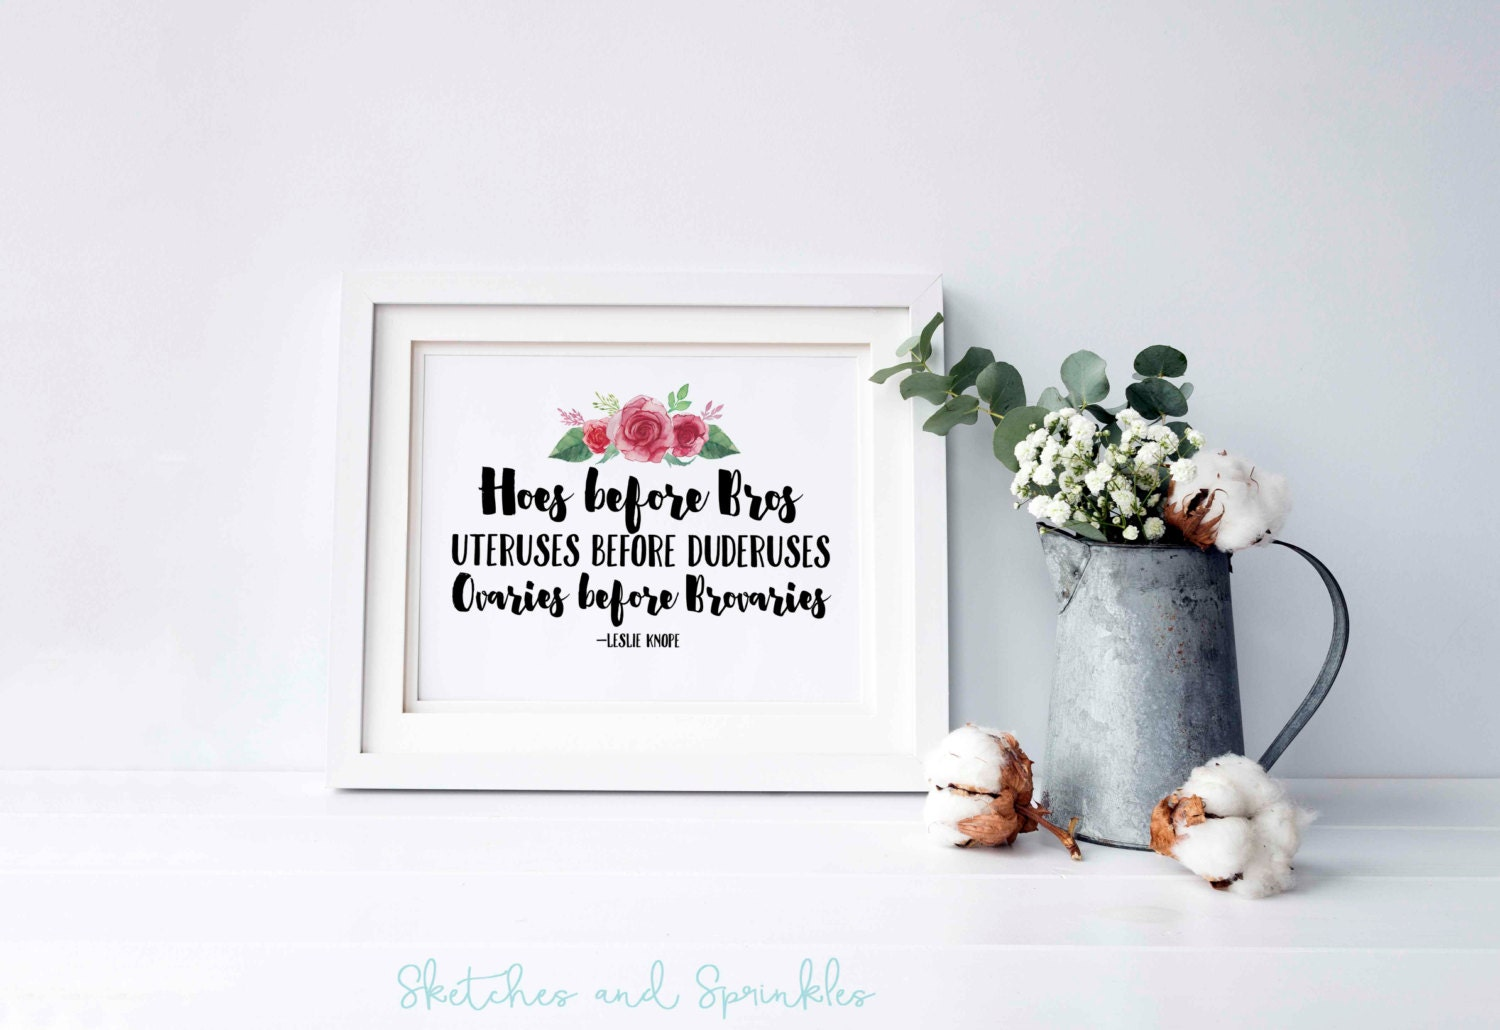 Hoes before bros printable home decor wall art funny quote for Funny home decor